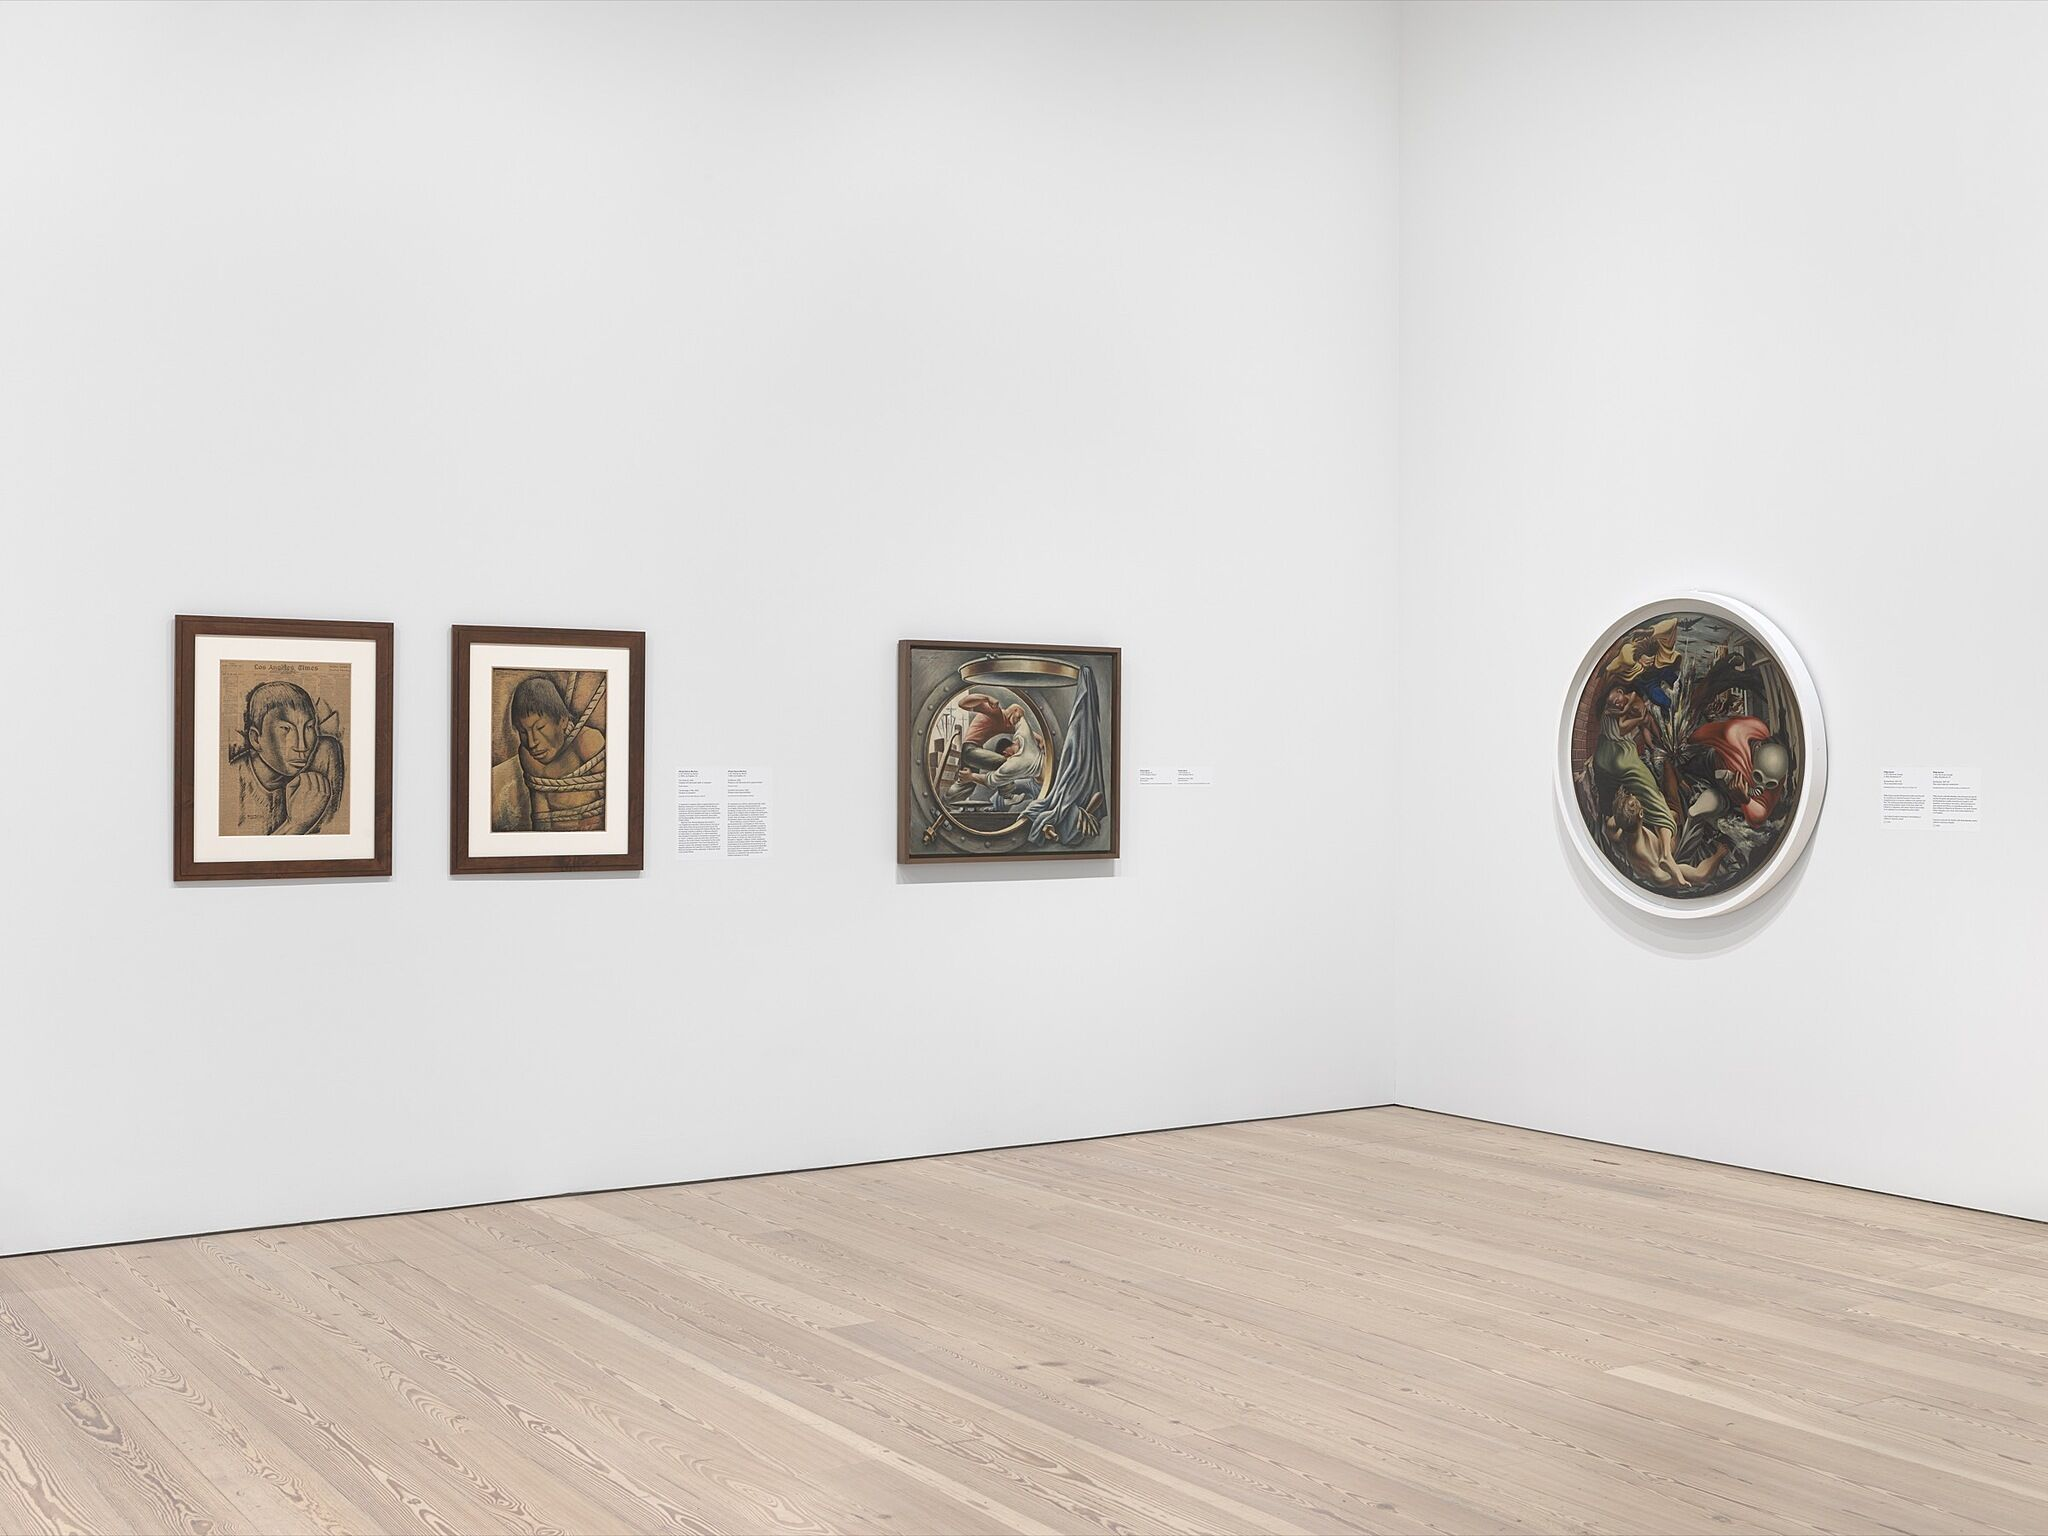 An installation photograph of a gallery with four medium-sized paintings.